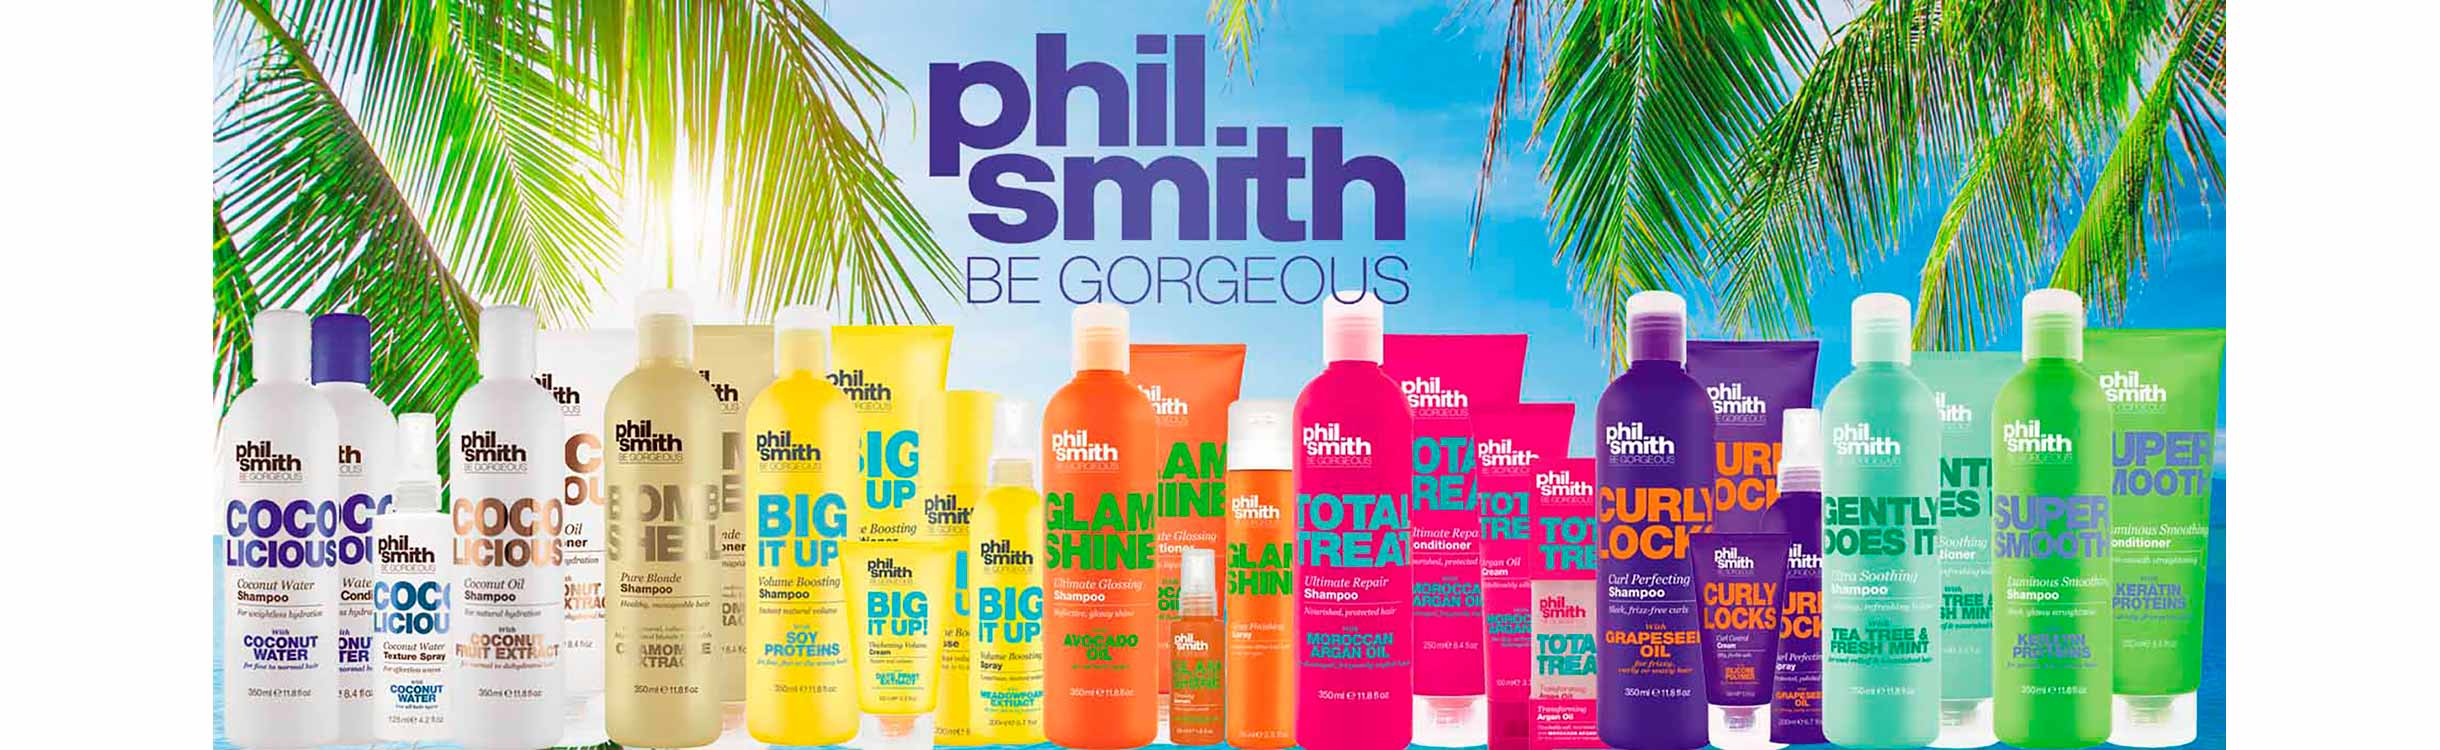 Phil Smith Coco Licious Coconut Oil